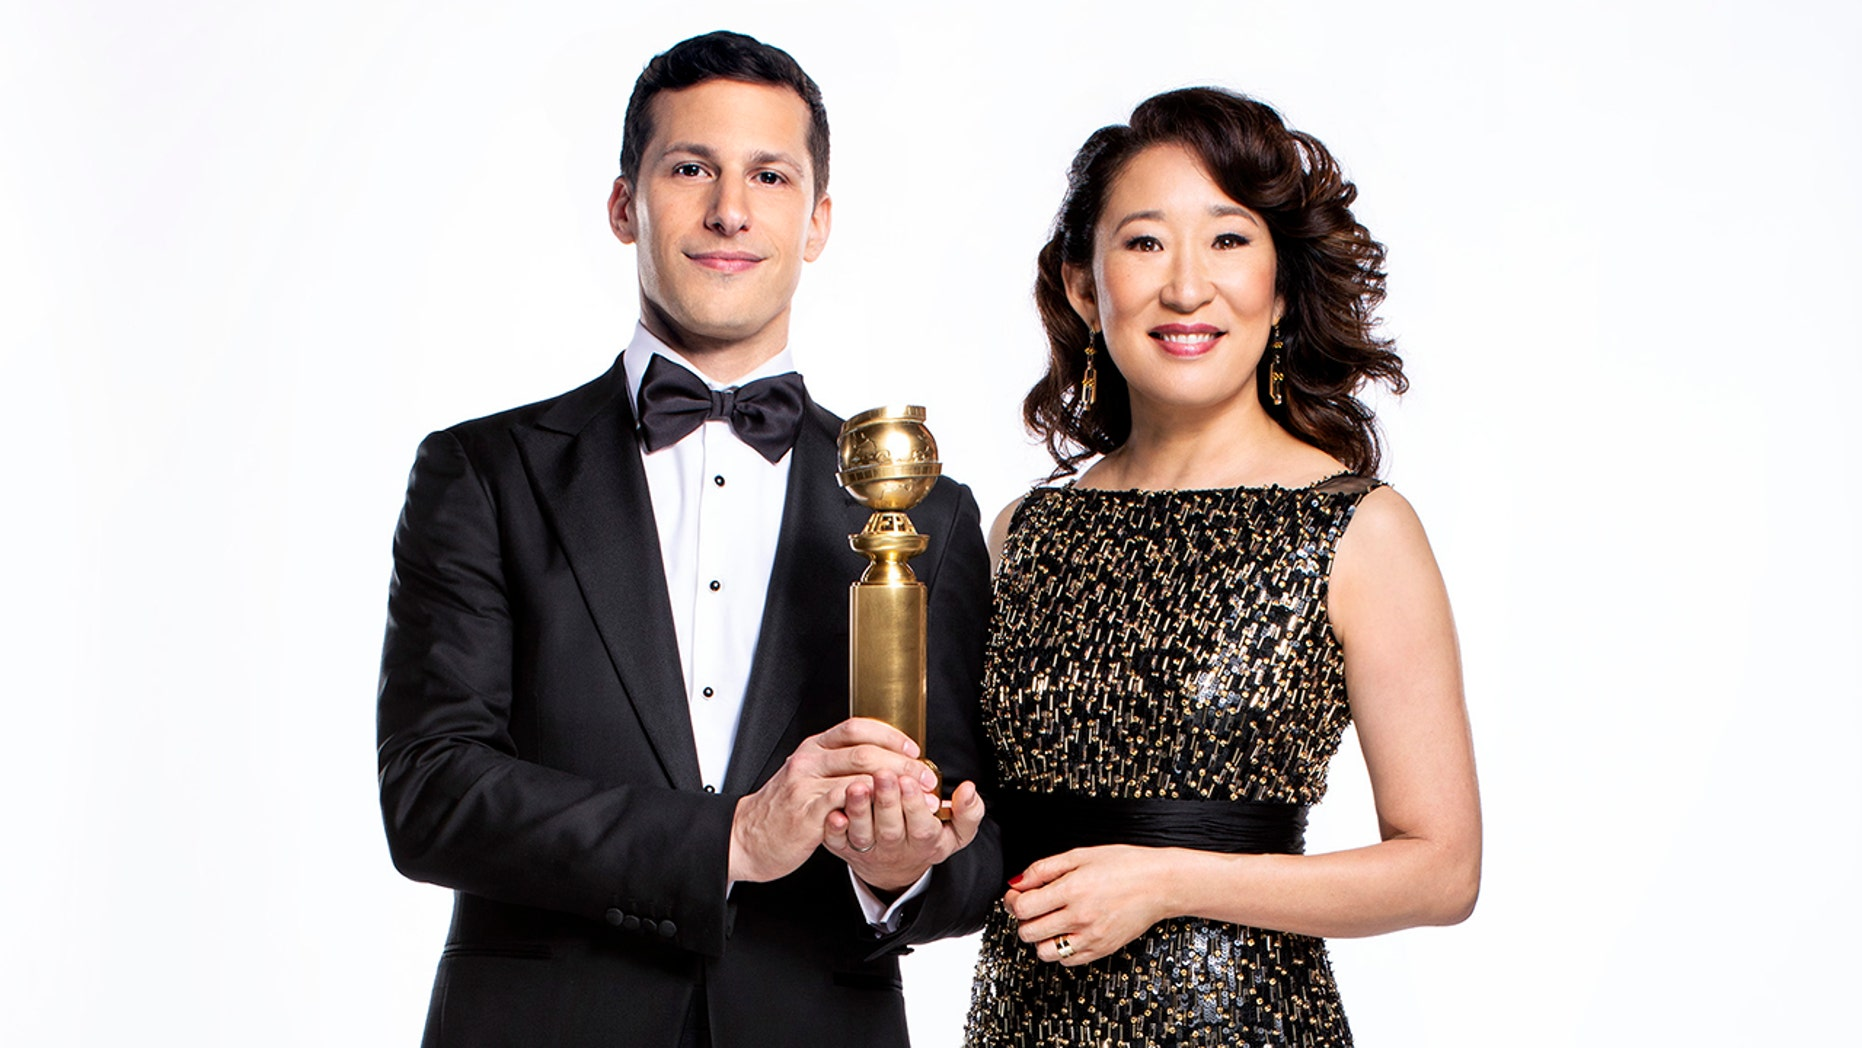 The First Round of Golden Globes Presenters Announced